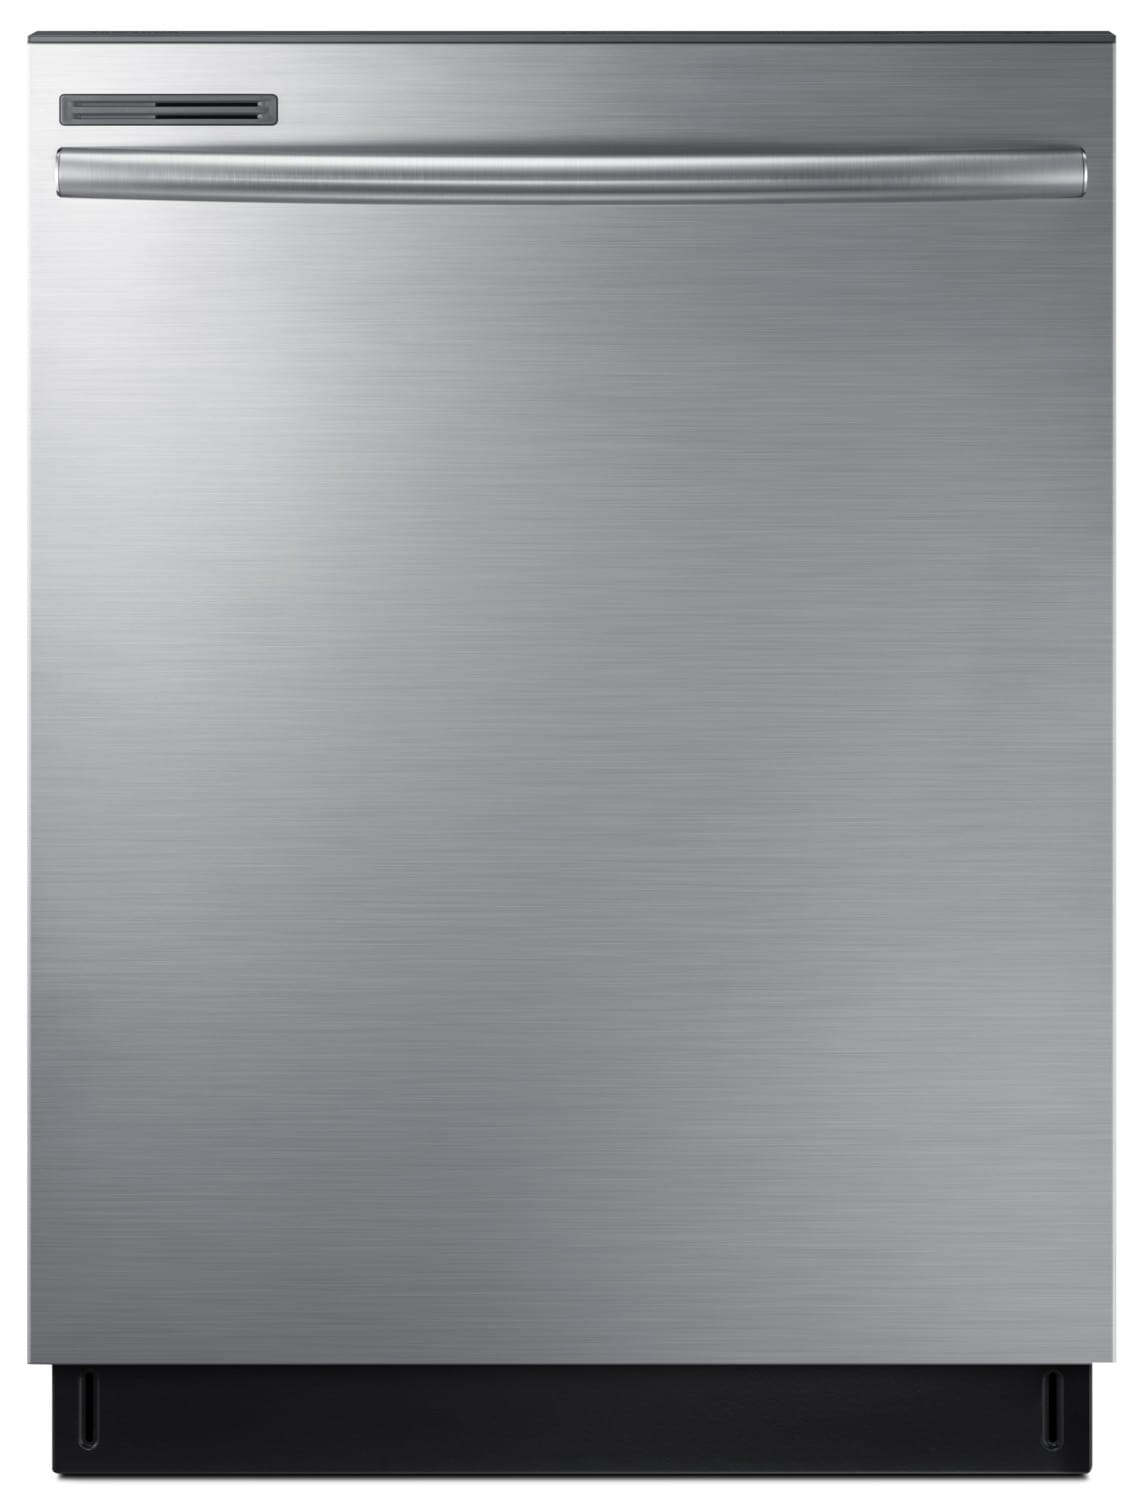 Samsung Built-In Dishwasher – DW80M2020US/AC